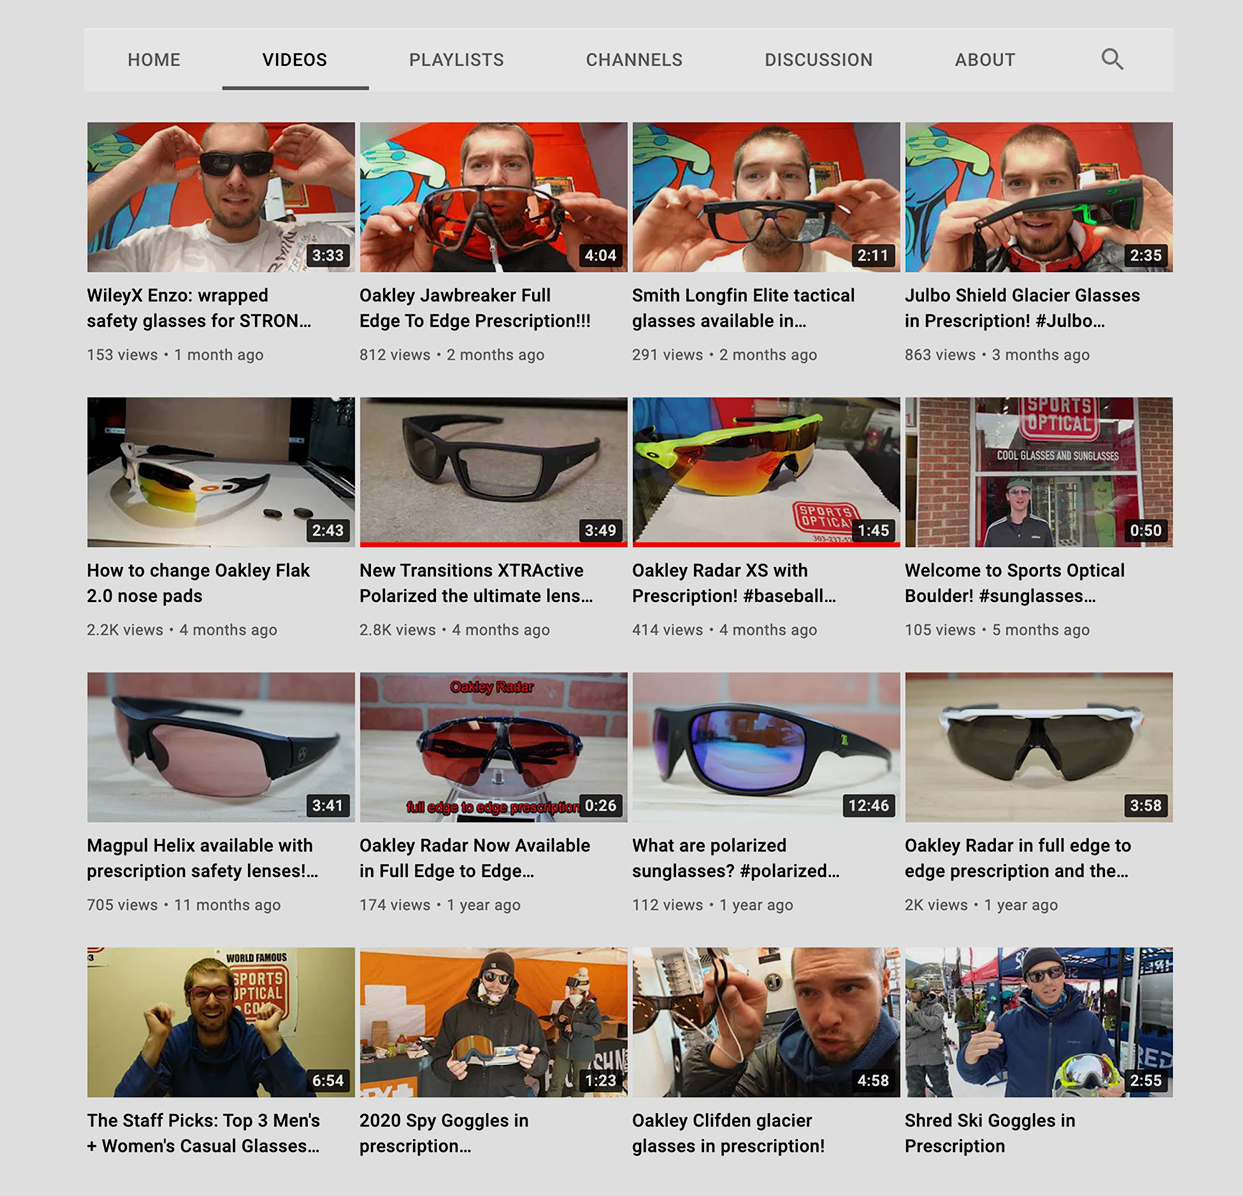 Sports Optical in Denver, CO, routinely posts videos on YouTube announcing frame arrivals or new sports prescription lens offerings.